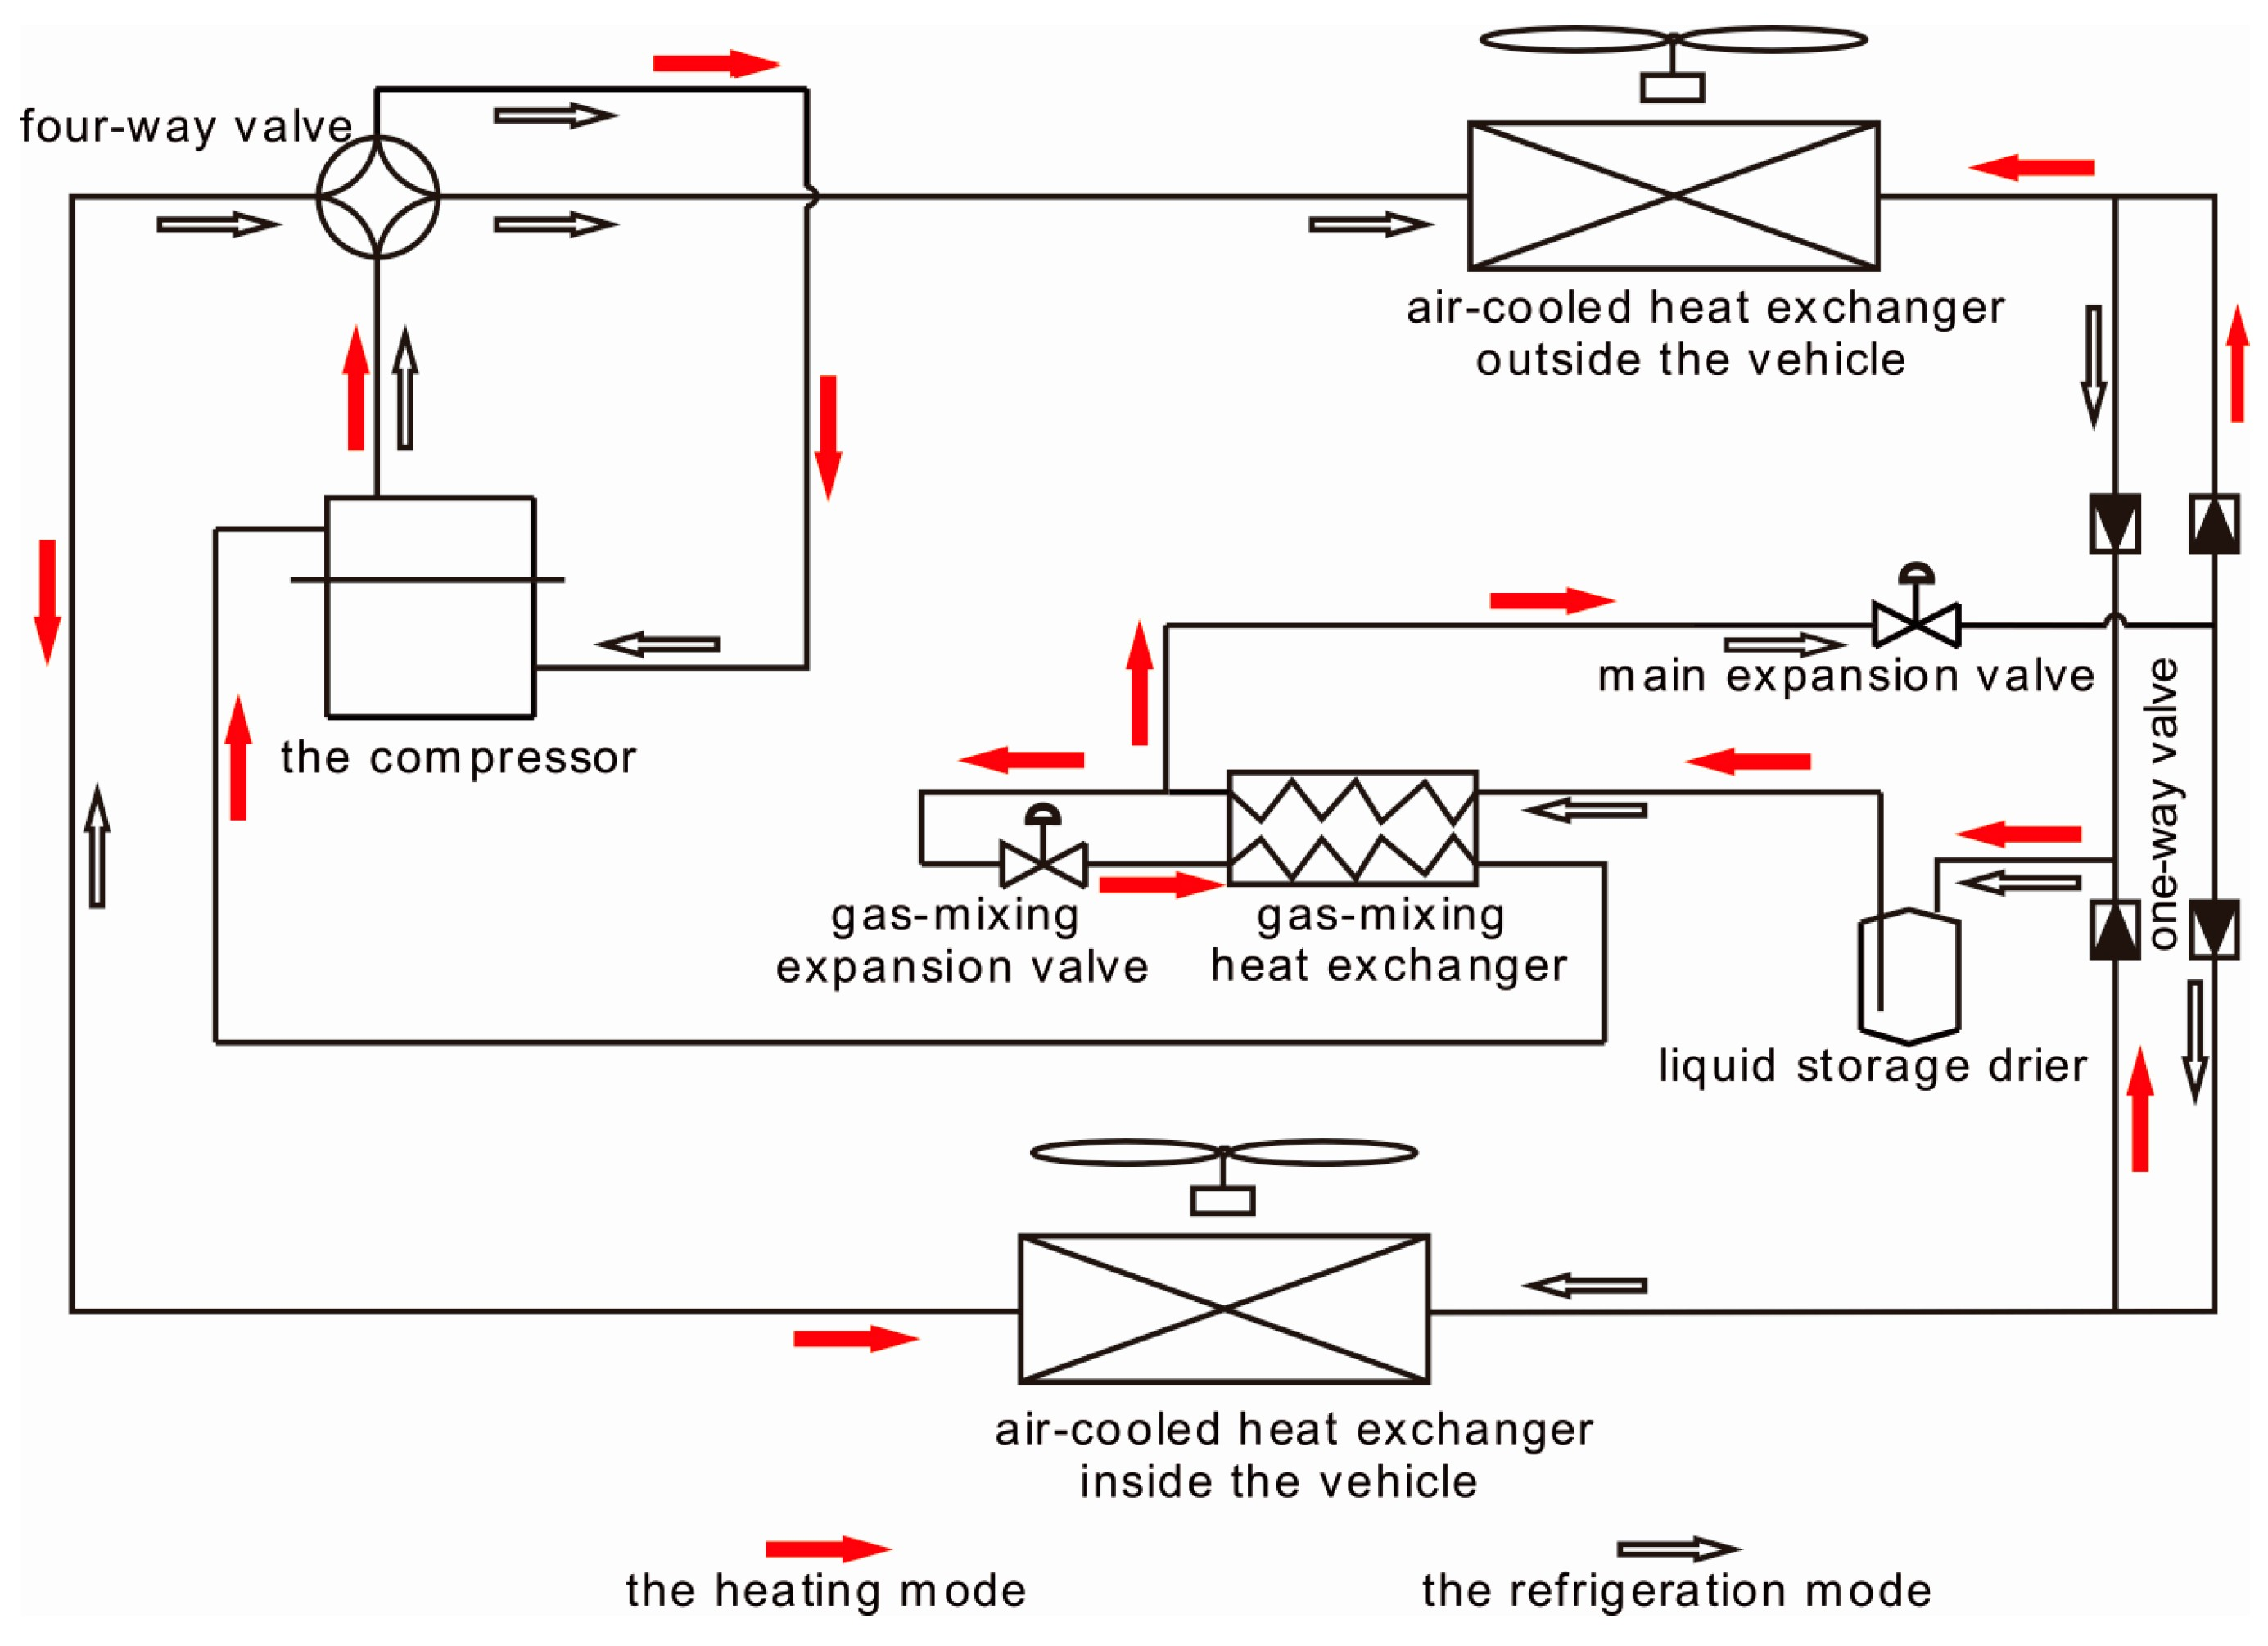 Car Ac Working Diagram Energies Free Full Text Of Car Ac Working Diagram